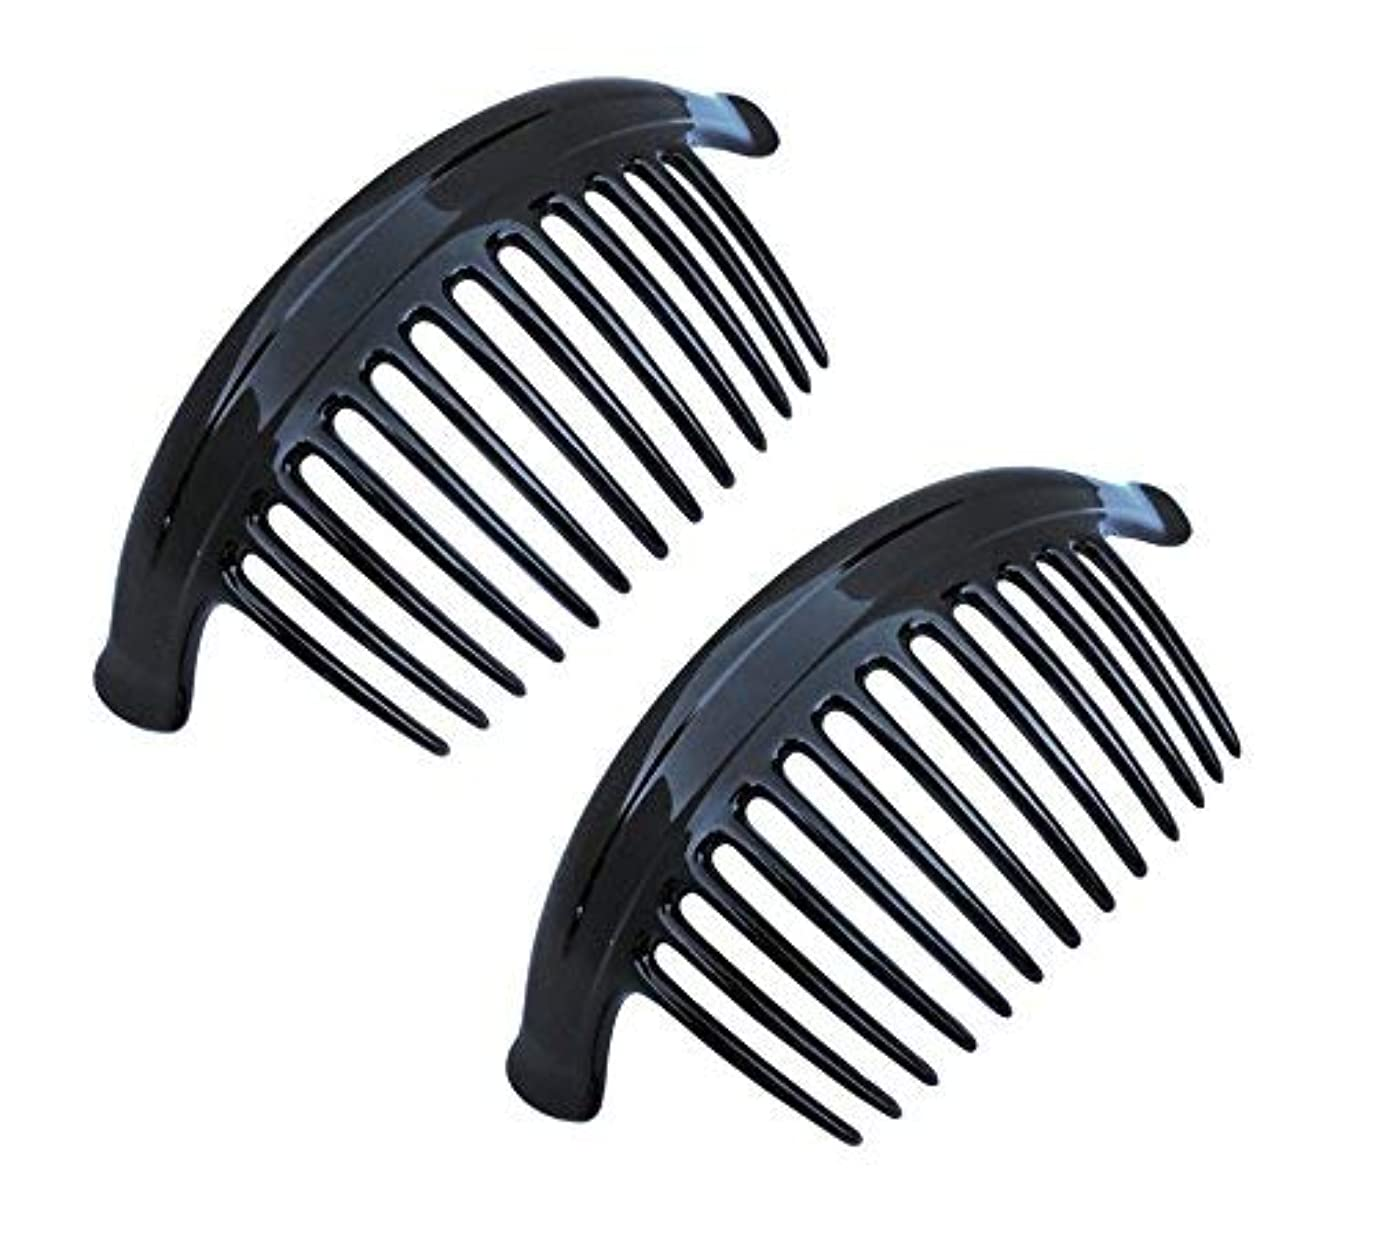 Parcelona French Arch Extra Large Black 13 Teeth Interlocking Side Hair Combs Pair [並行輸入品]